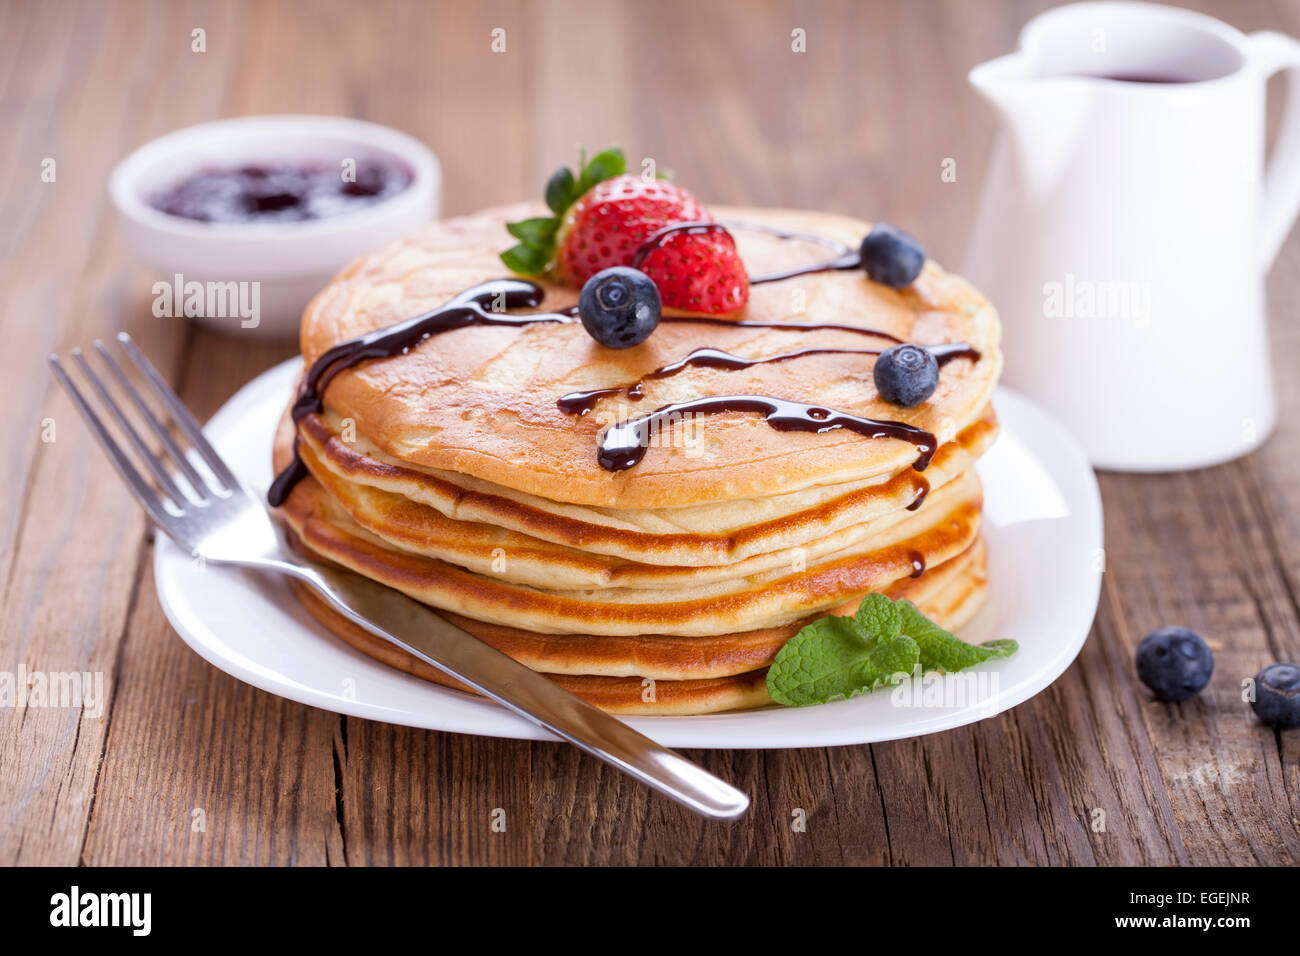 Delicious sweet American pancakes on a plate with fresh fruits Stock Photo